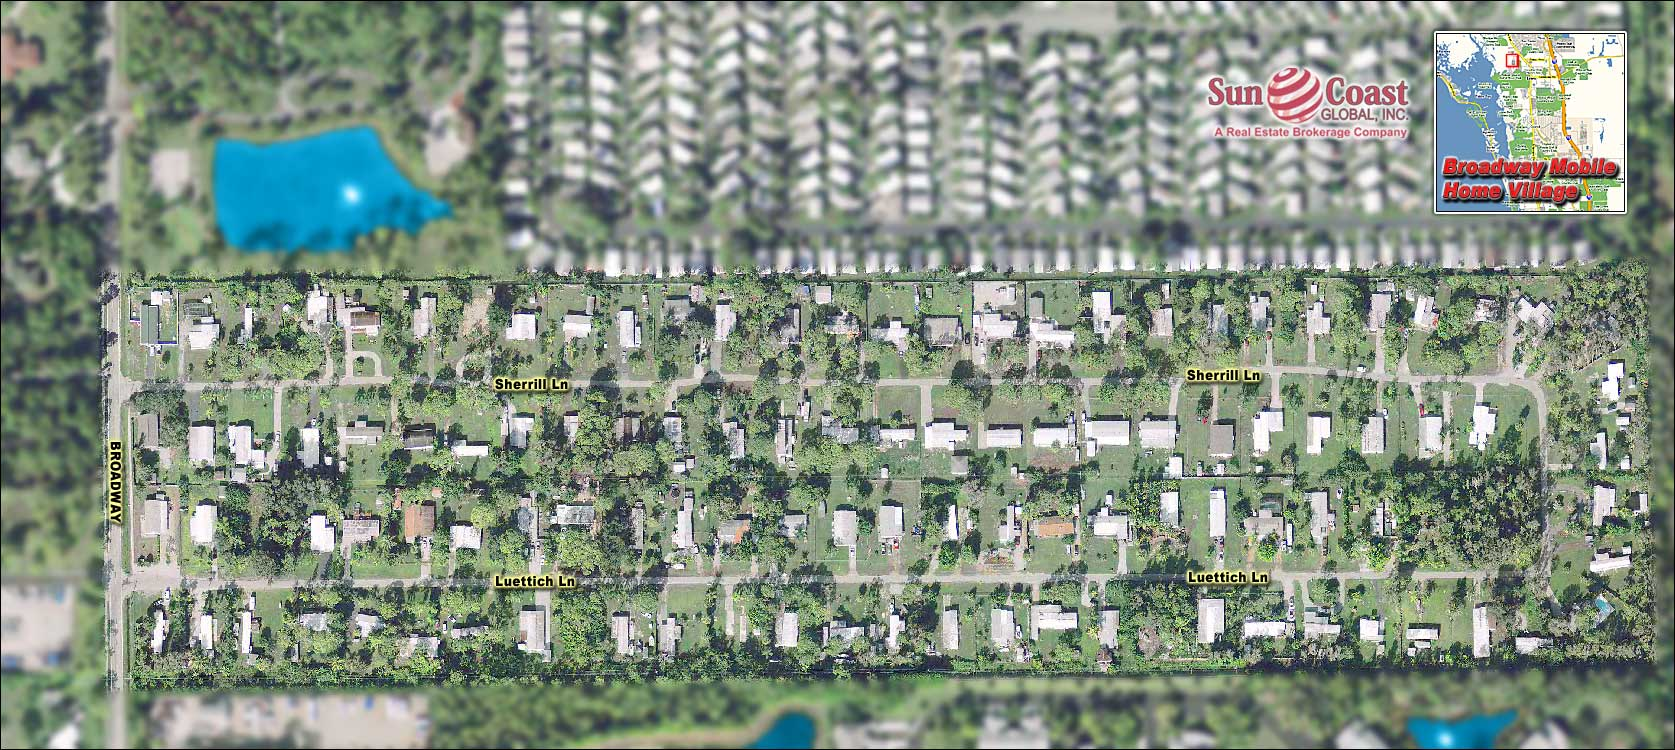 Broadway Mobile Home Village Overhead Map